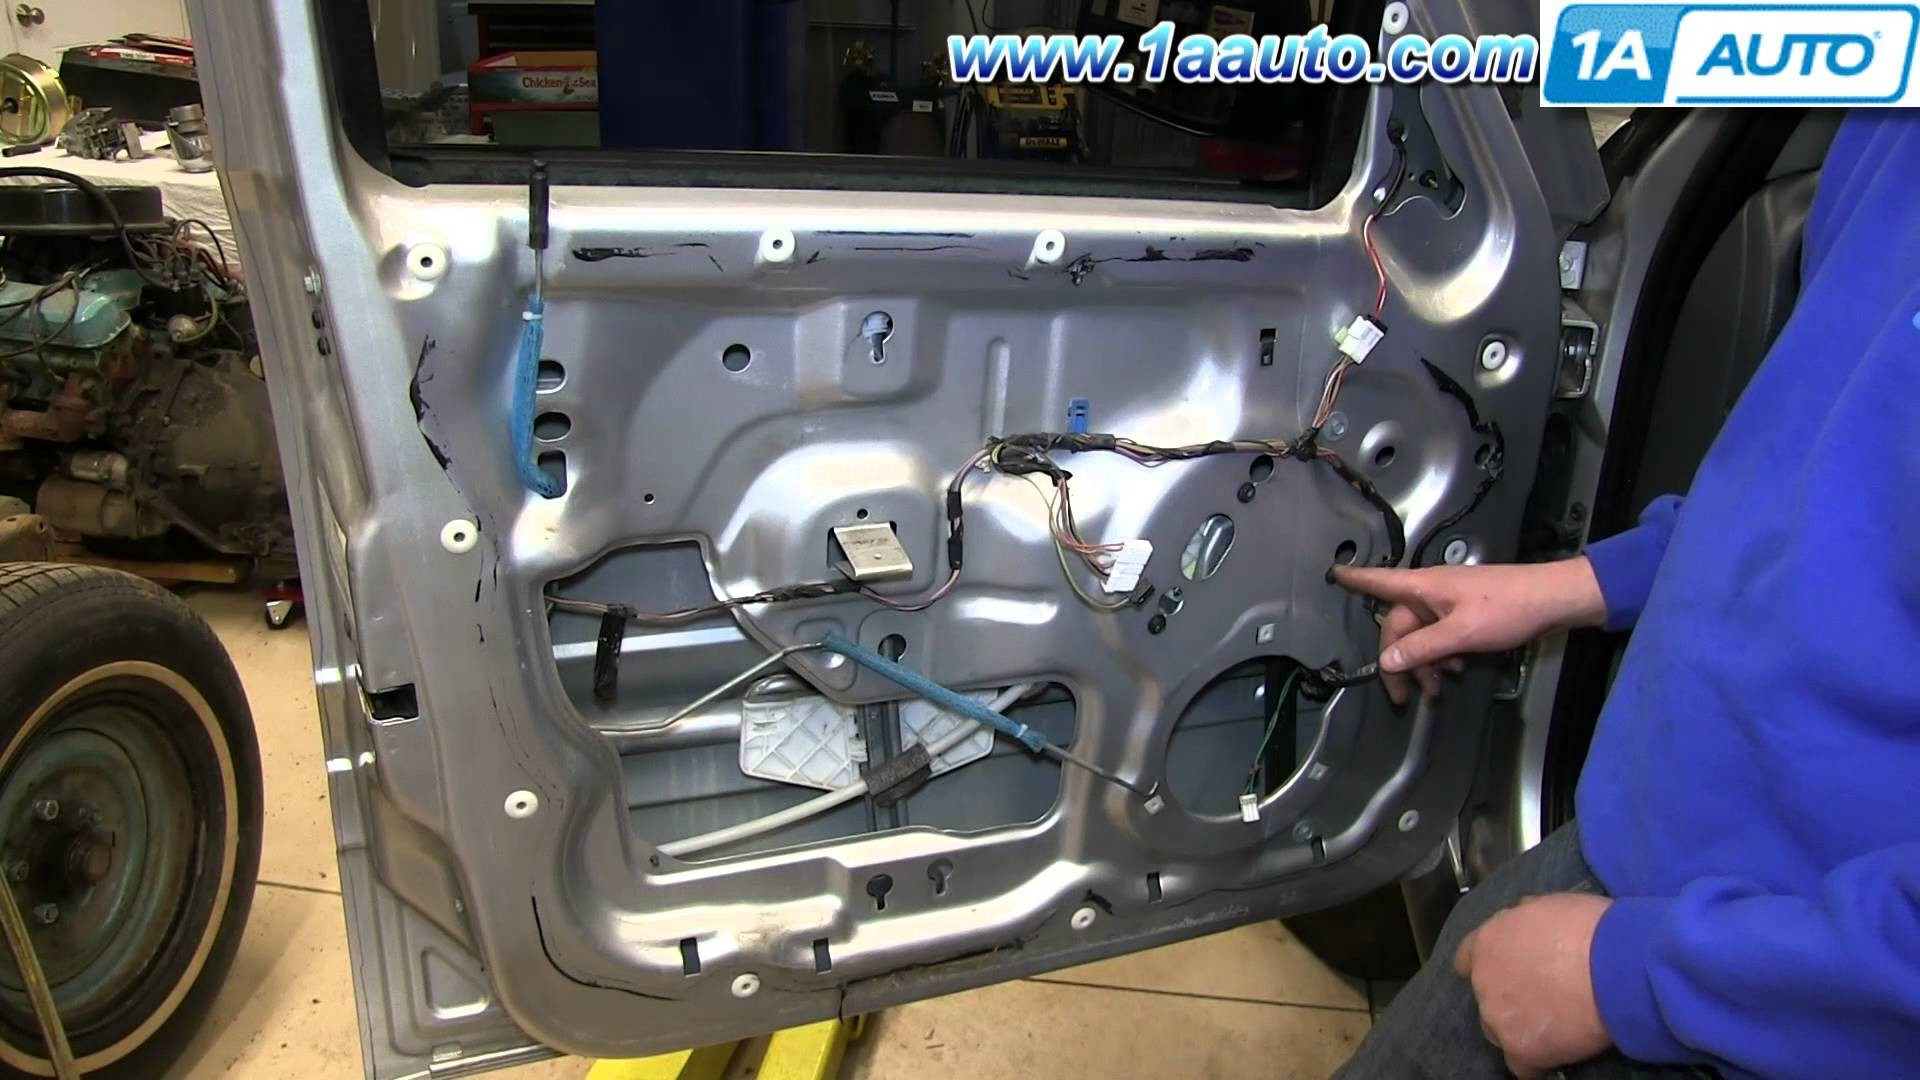 Jeep 4 0 Liter Engine Diagram How to Install Replace Front Power Window Regulator 2002 07 Jeep Of Jeep 4 0 Liter Engine Diagram